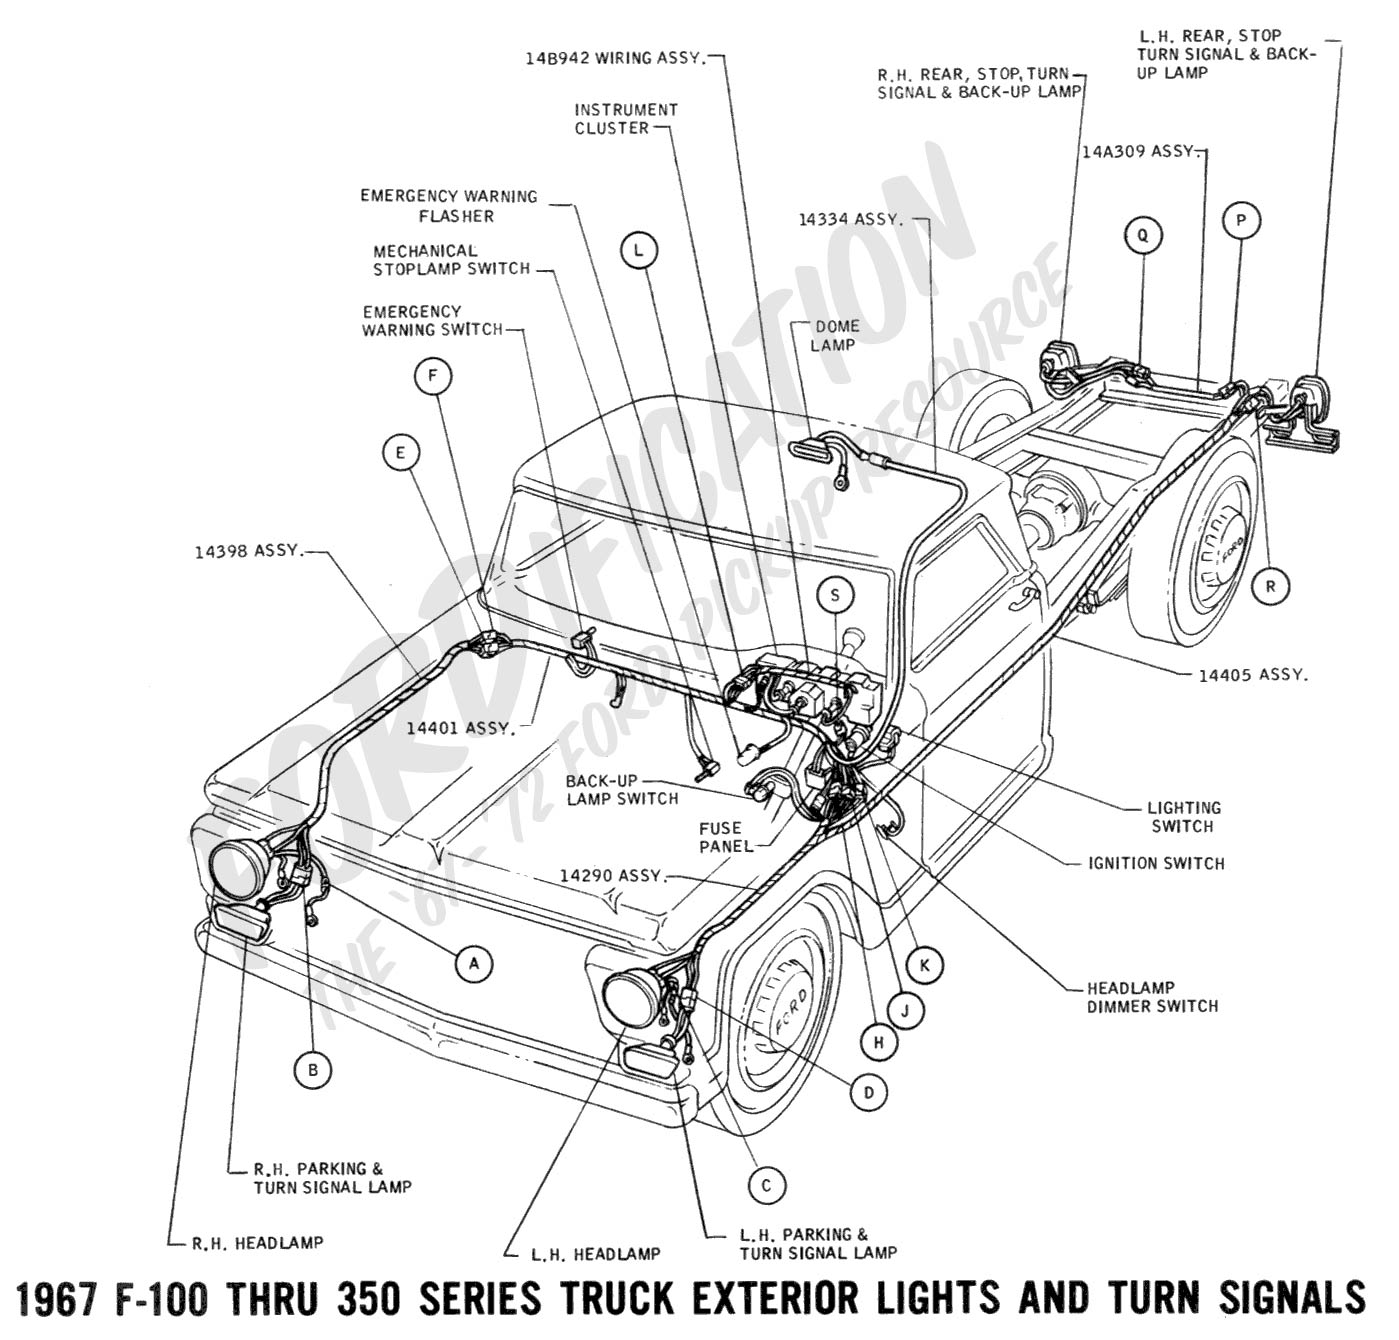 wiring 1967extlights01 ford truck technical drawings and schematics section h wiring 1999 ford ranger xlt wiring diagrams at fashall.co